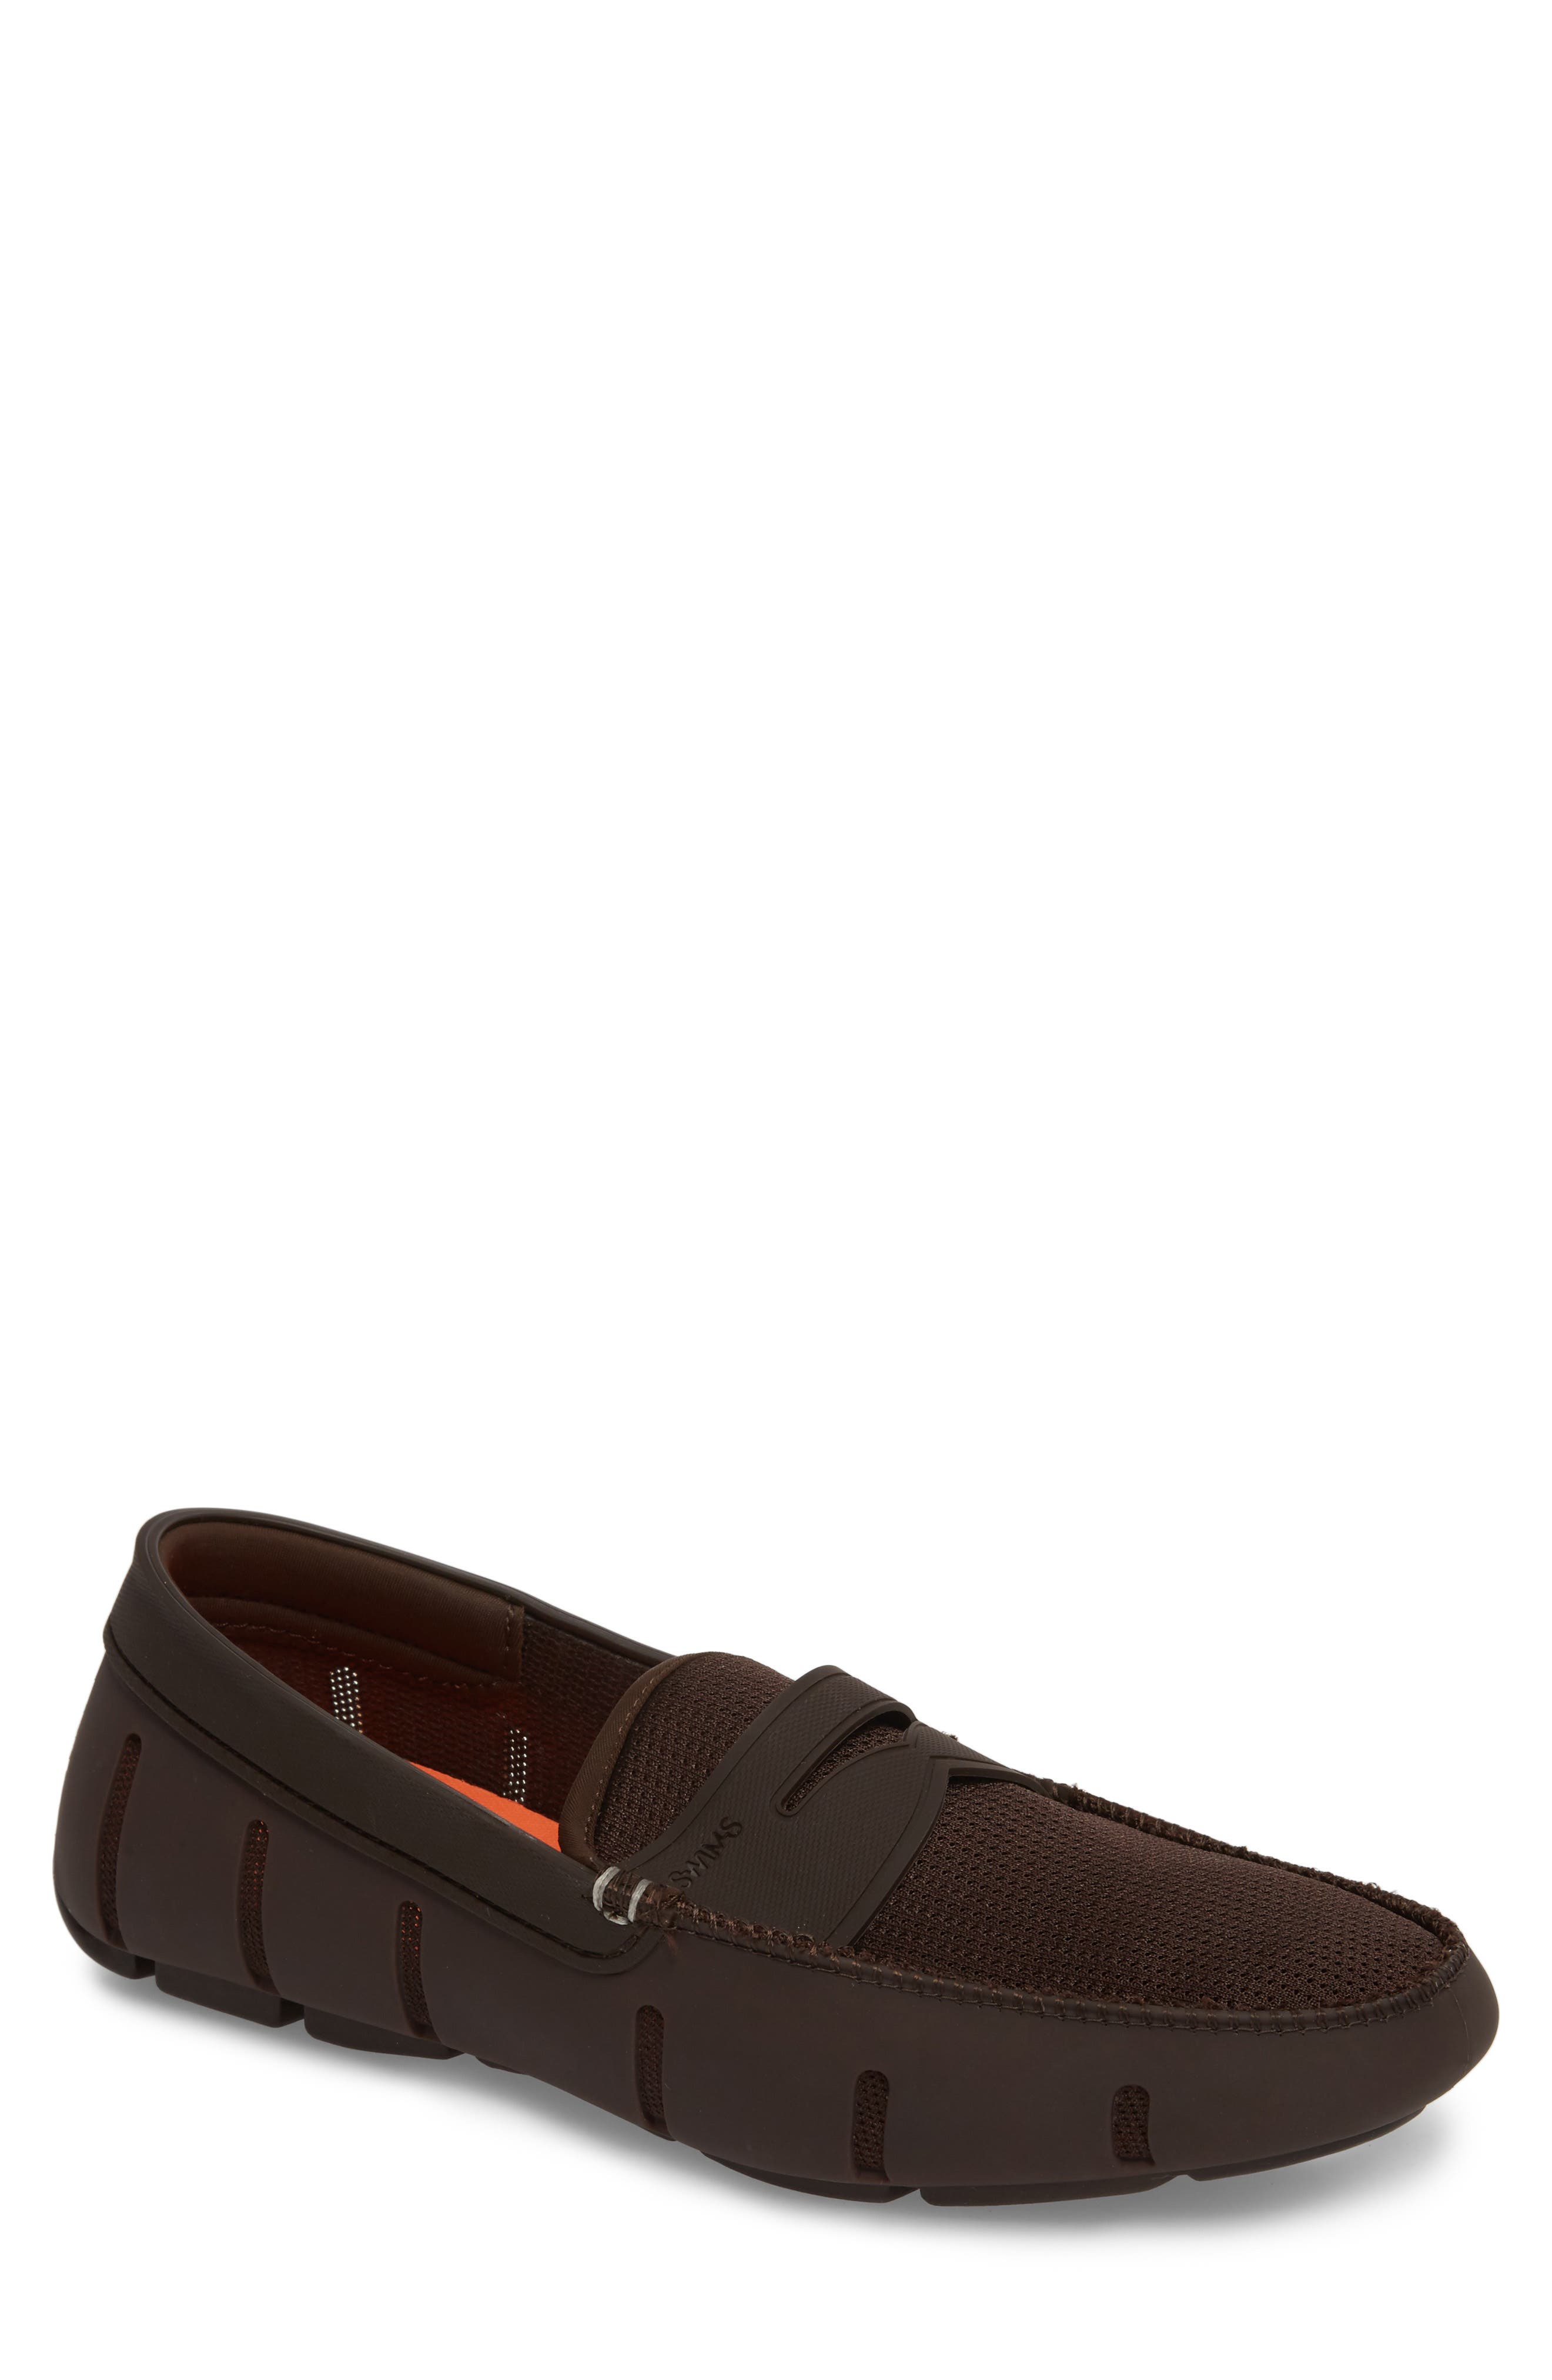 Washable Penny Loafer,                         Main,                         color, 242